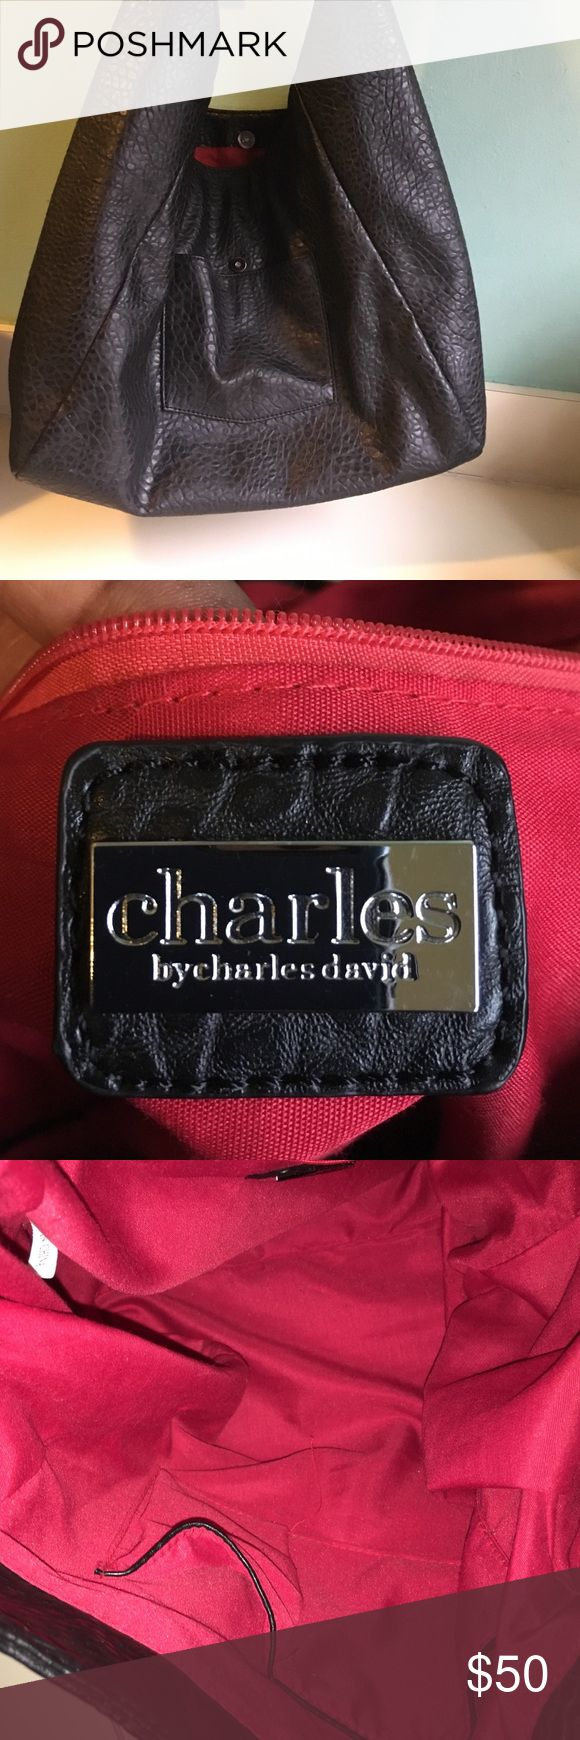 Charles by Charles David black leather, slouch bag Black leather Charles by Charles David, slouchy leather bag.  Red interior (perfect condition) 1 inside zip pocket, cell phone/key pockets.  One outside pocket.  No fading, tears or spots. Charles David Bags Hobos